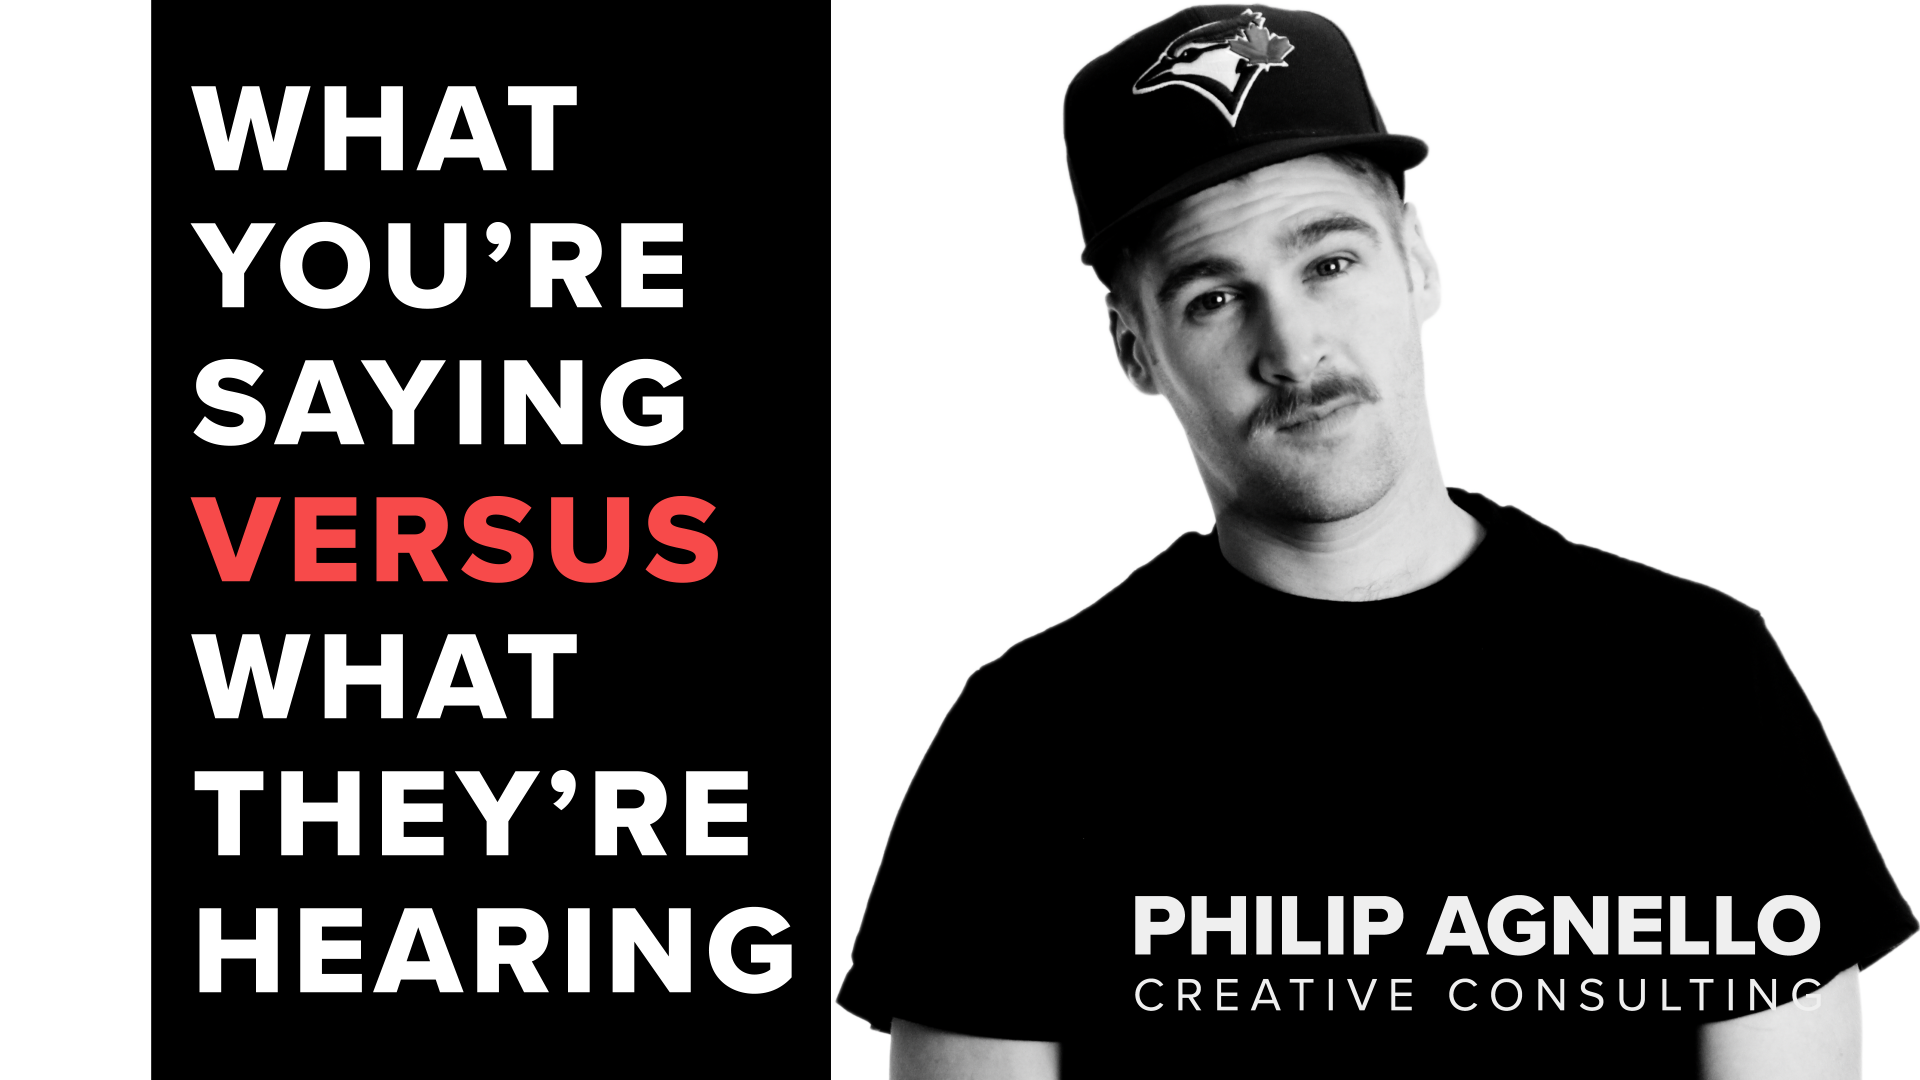 Title: What You're Saying Vs. What They're Hearing